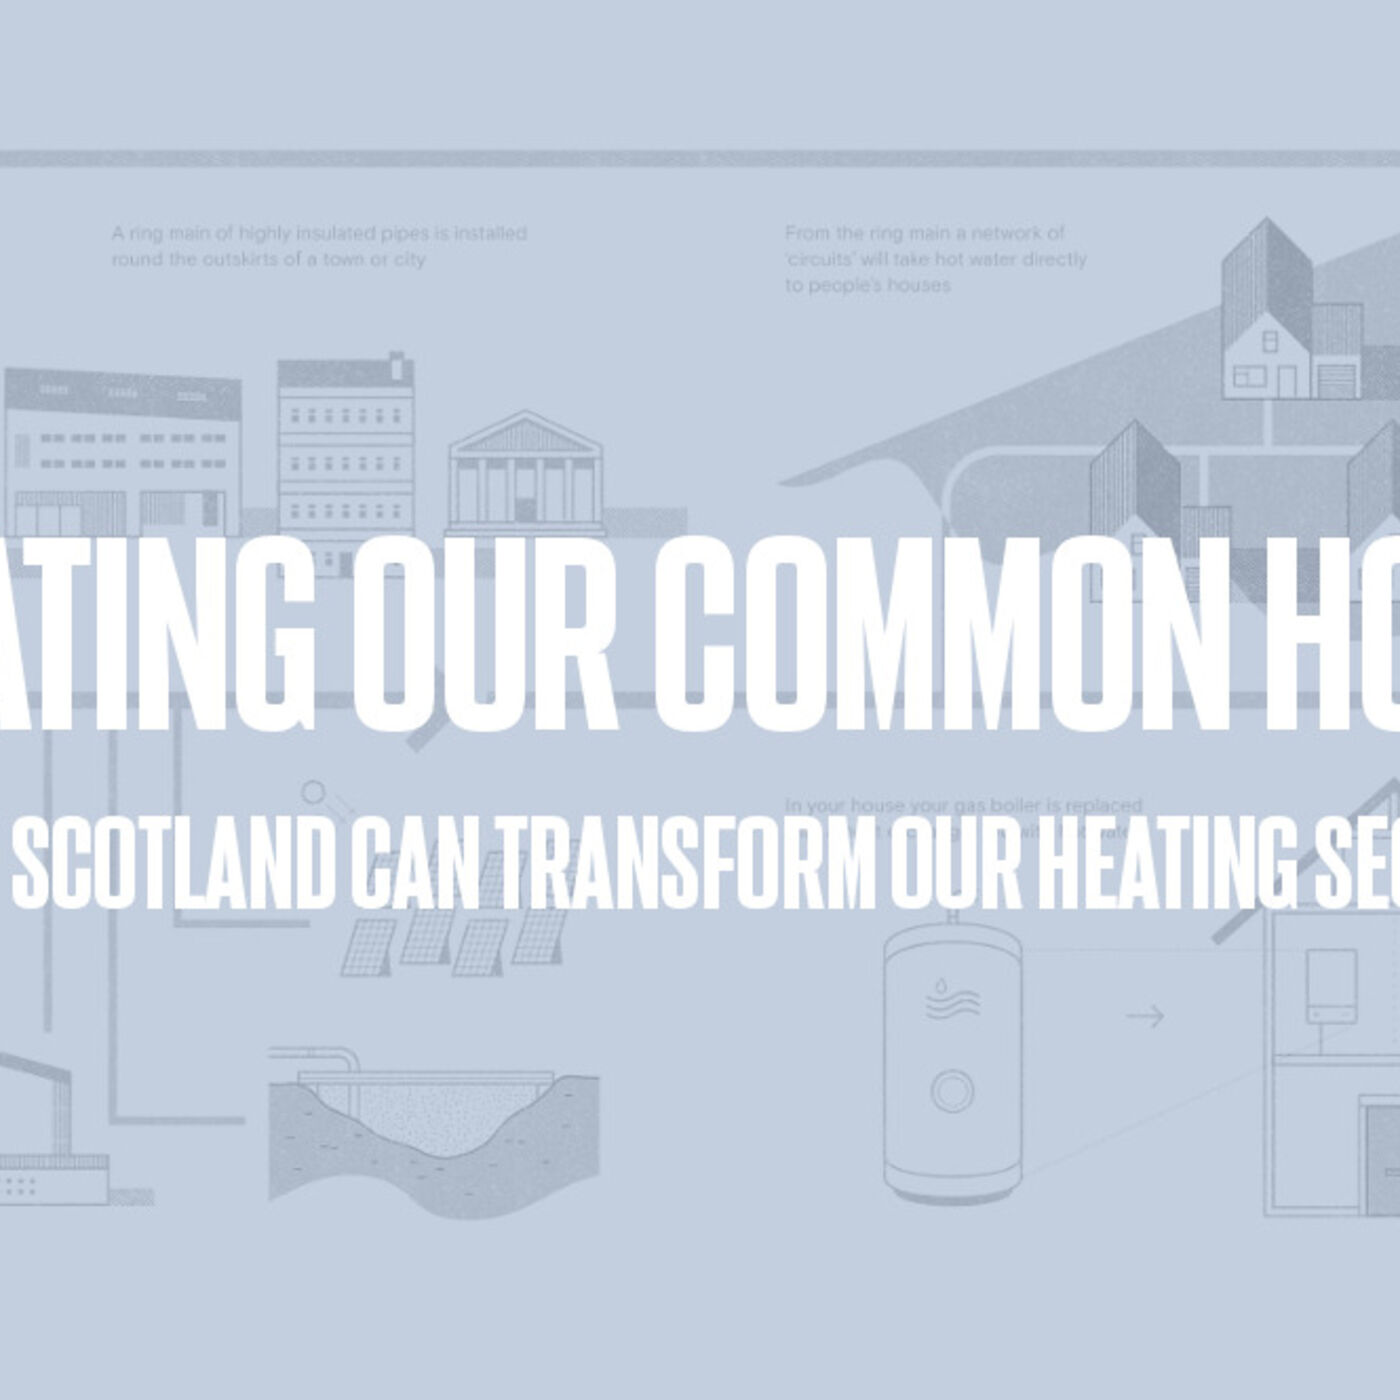 Episode #36 - Heating Our Common Home